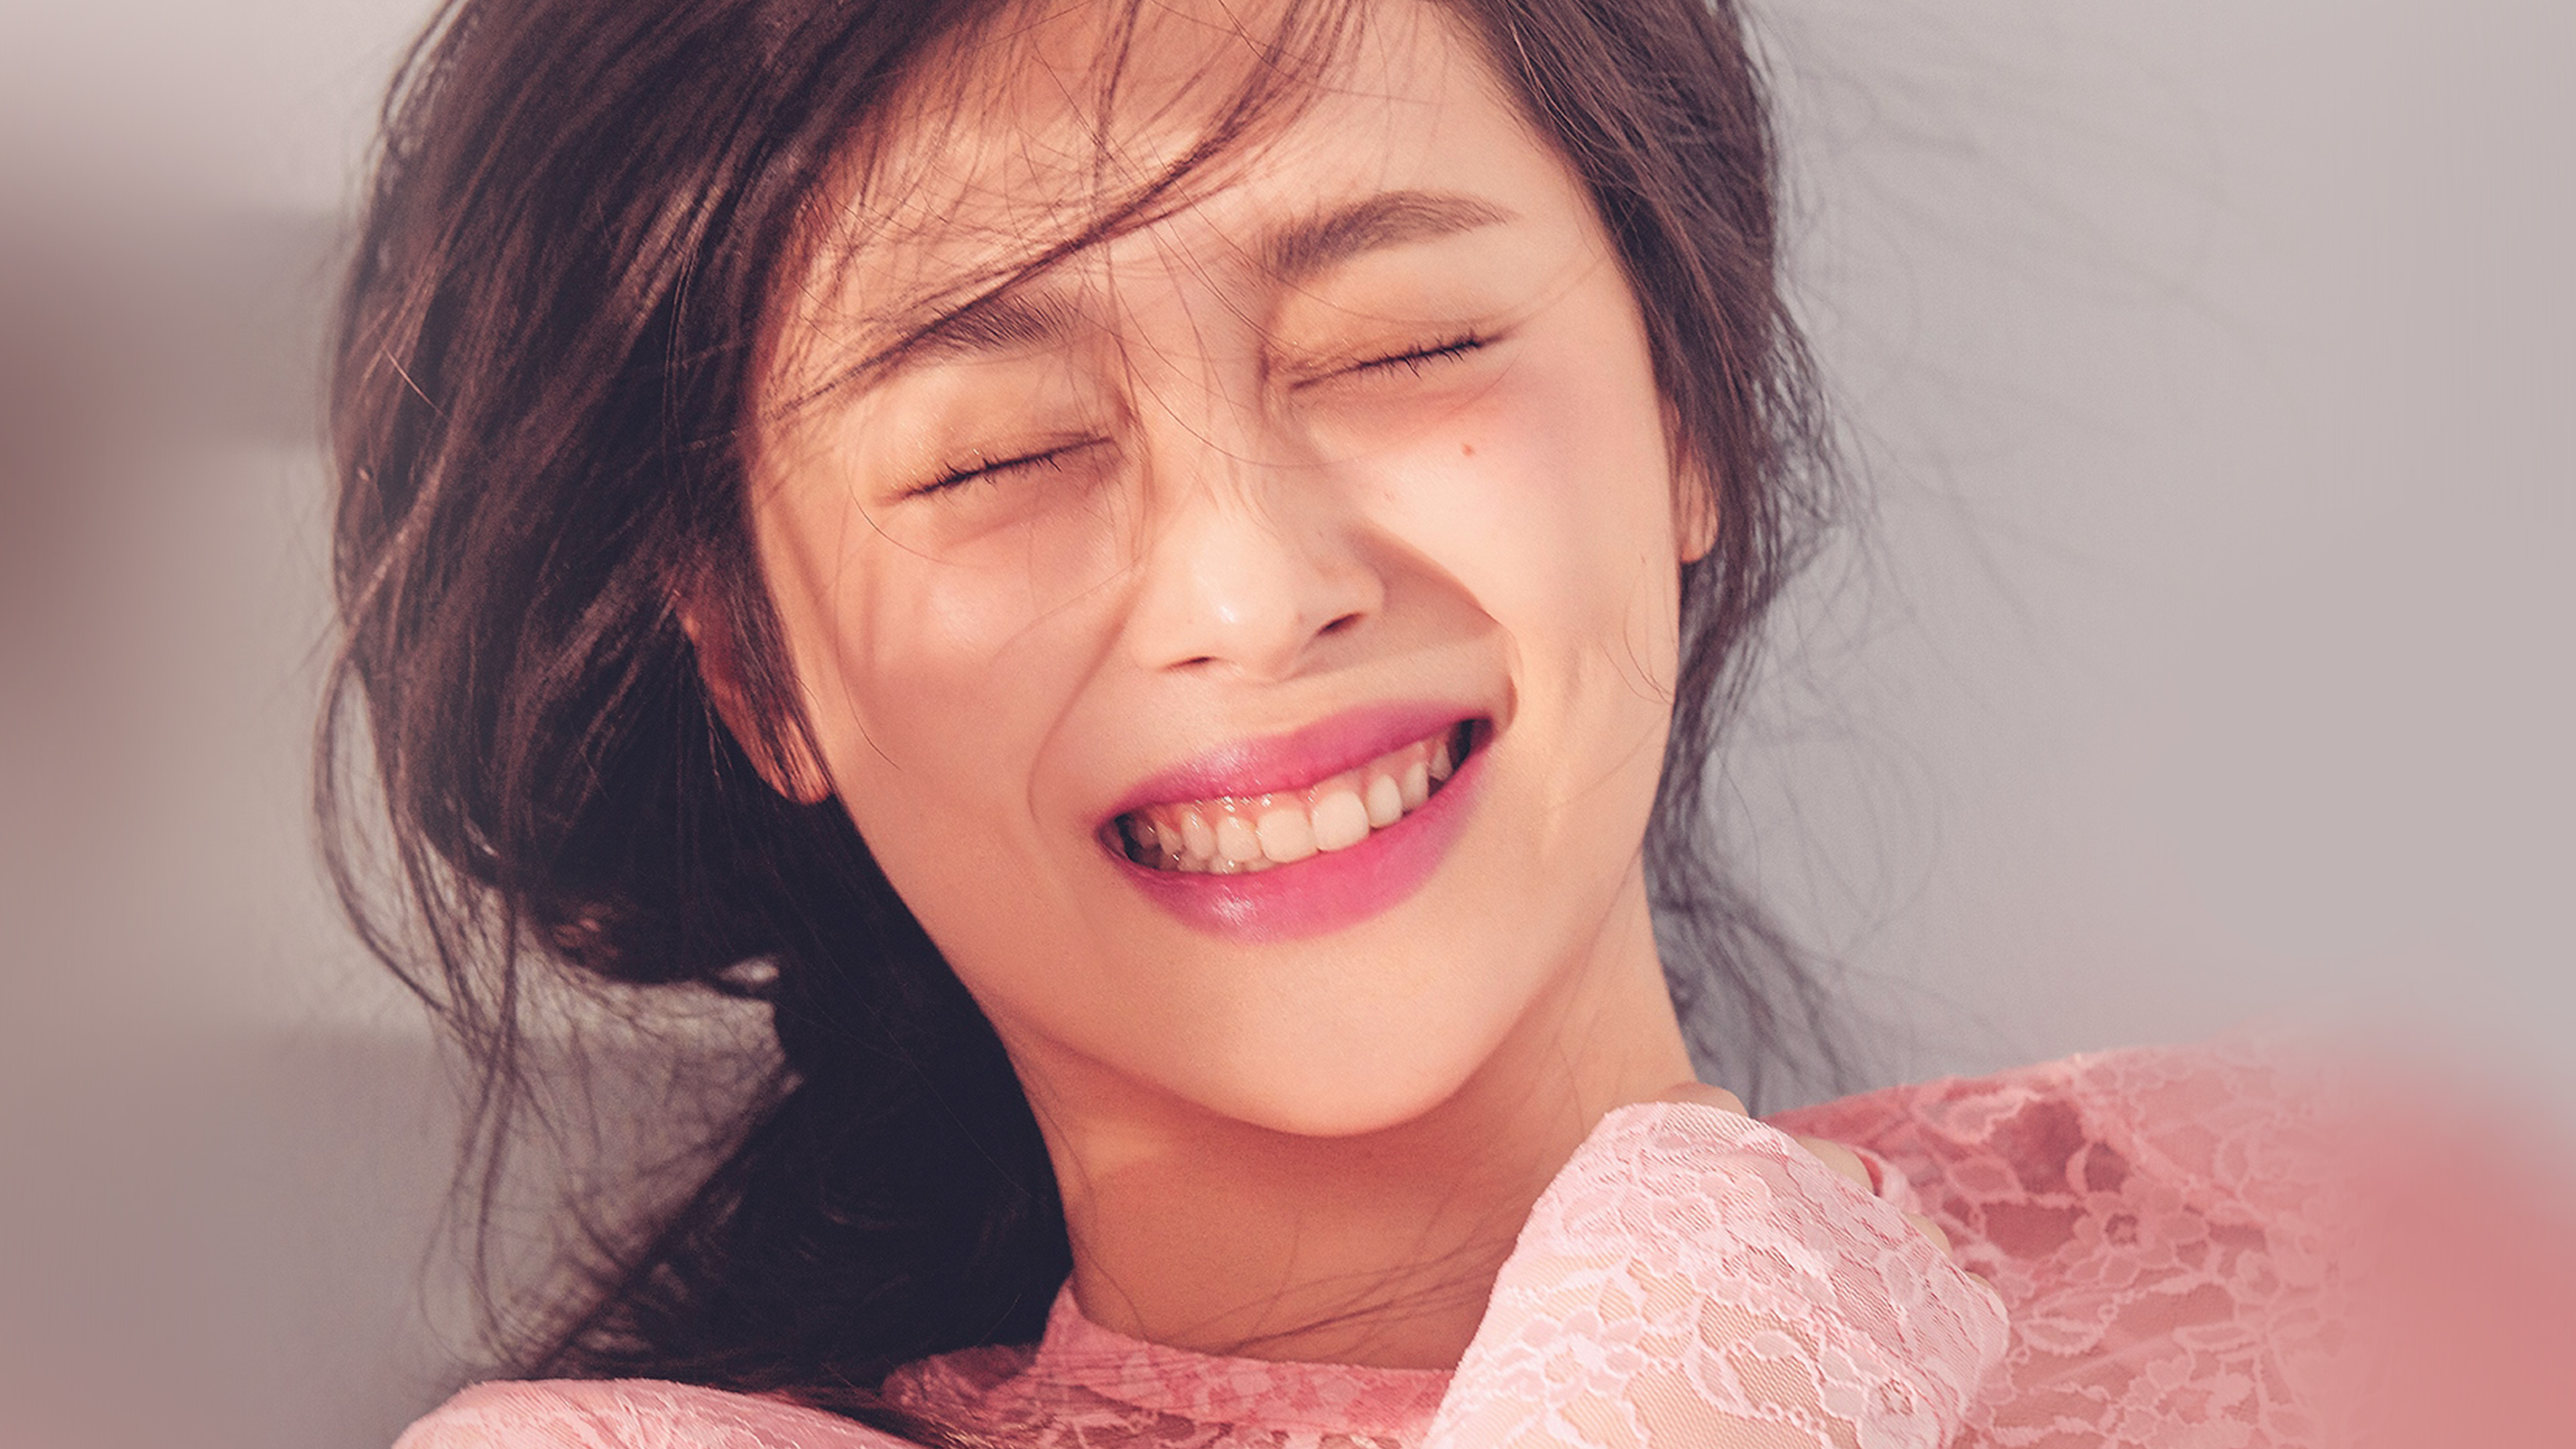 smiling essays Today's post is by a guest blogger, sarah stevenson there's magic in your smile by sarah stevenson sometimes your joy is the source of your smile, but sometimes your smile can be the source of your joy ~thich nhat hanh it's a rough morning first, my alarm doesn't go off then i'm late.